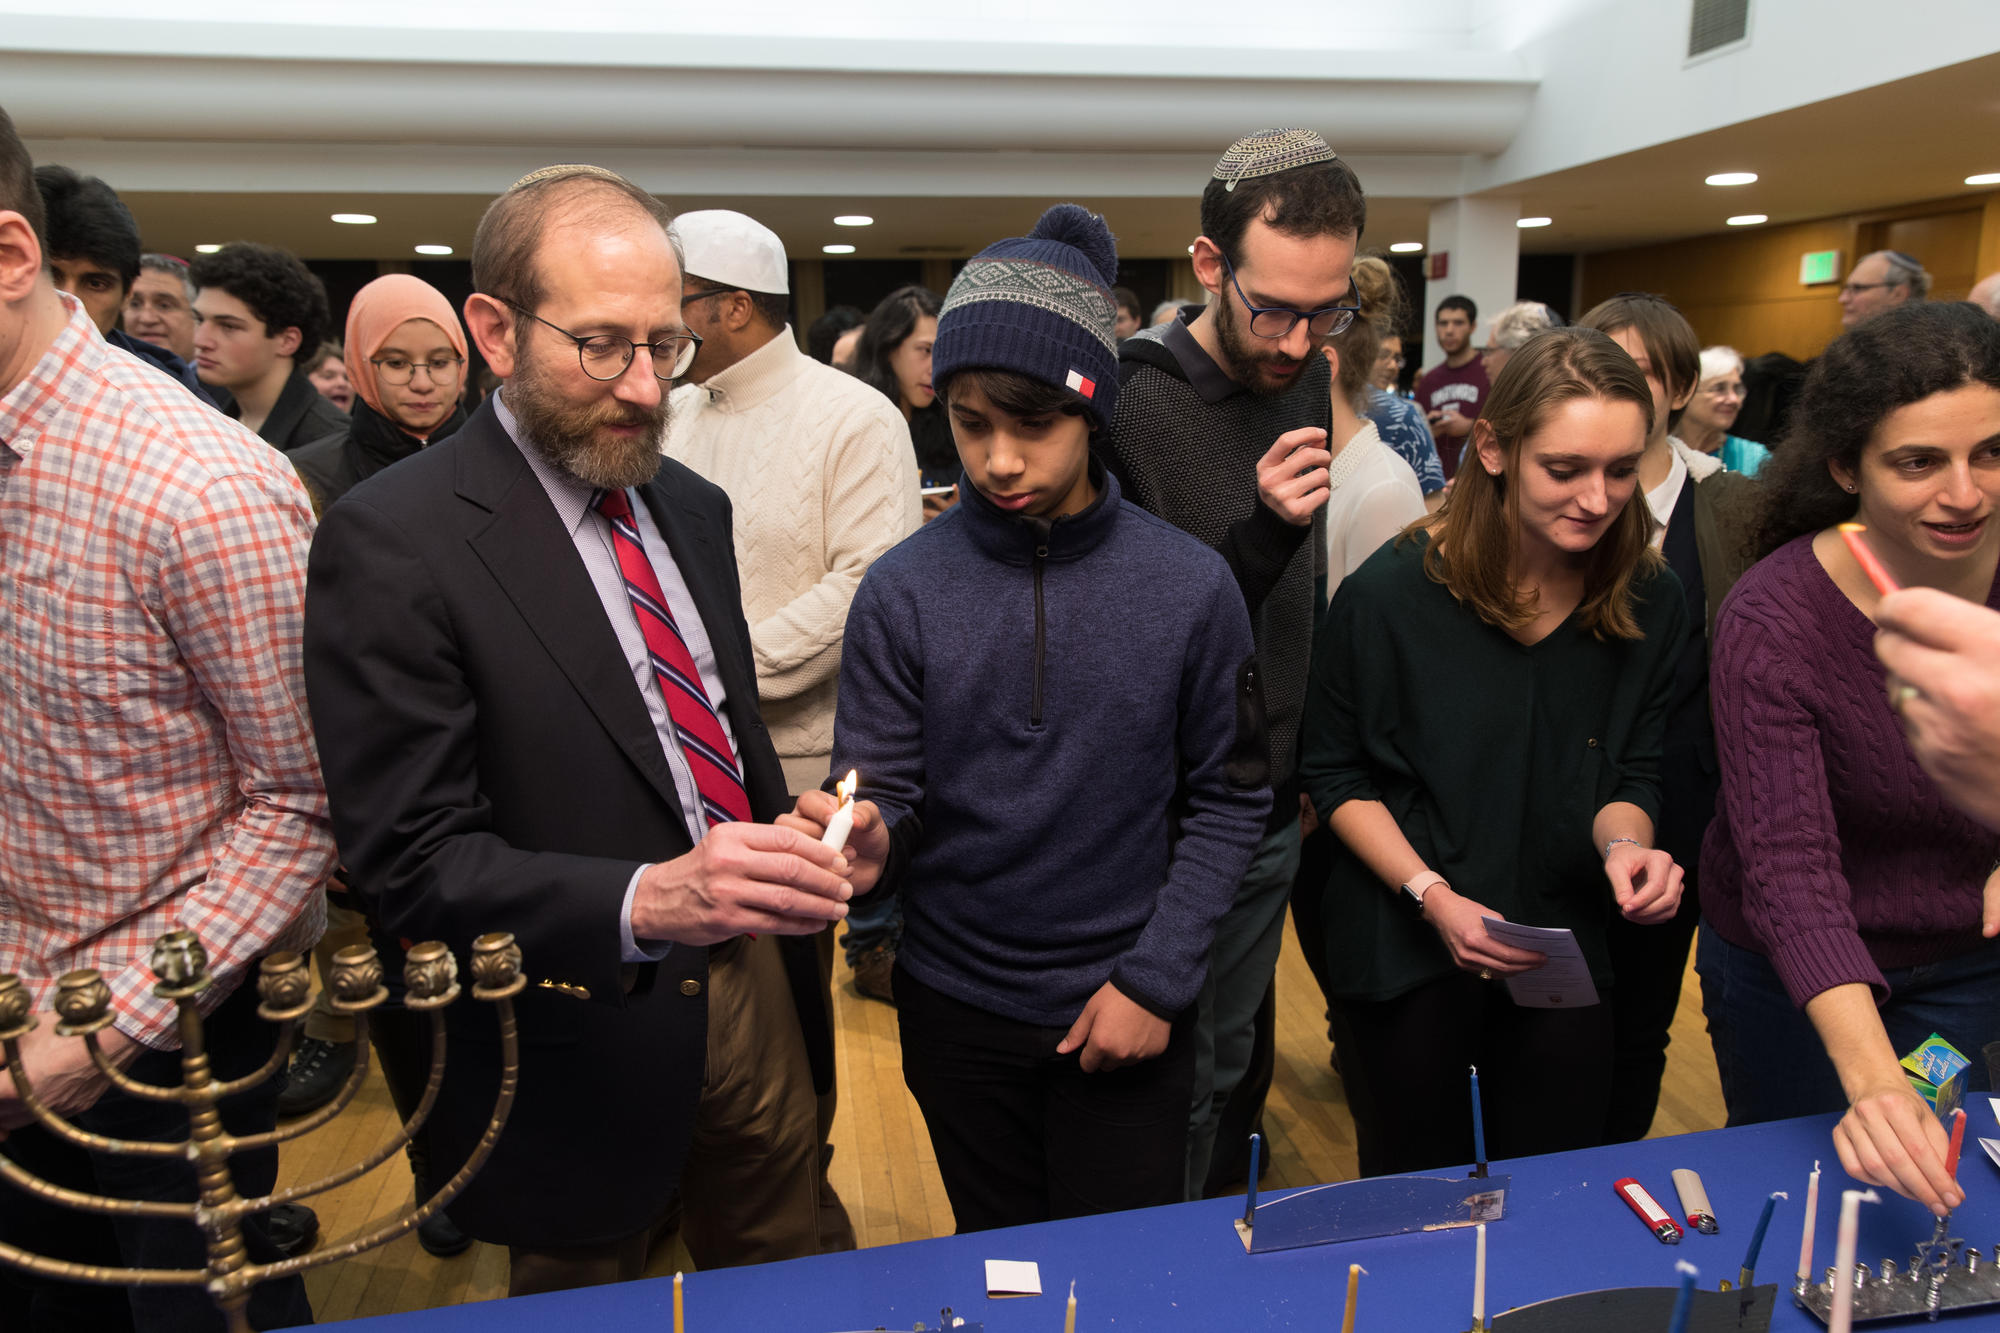 Hanukkah with Provost Garber